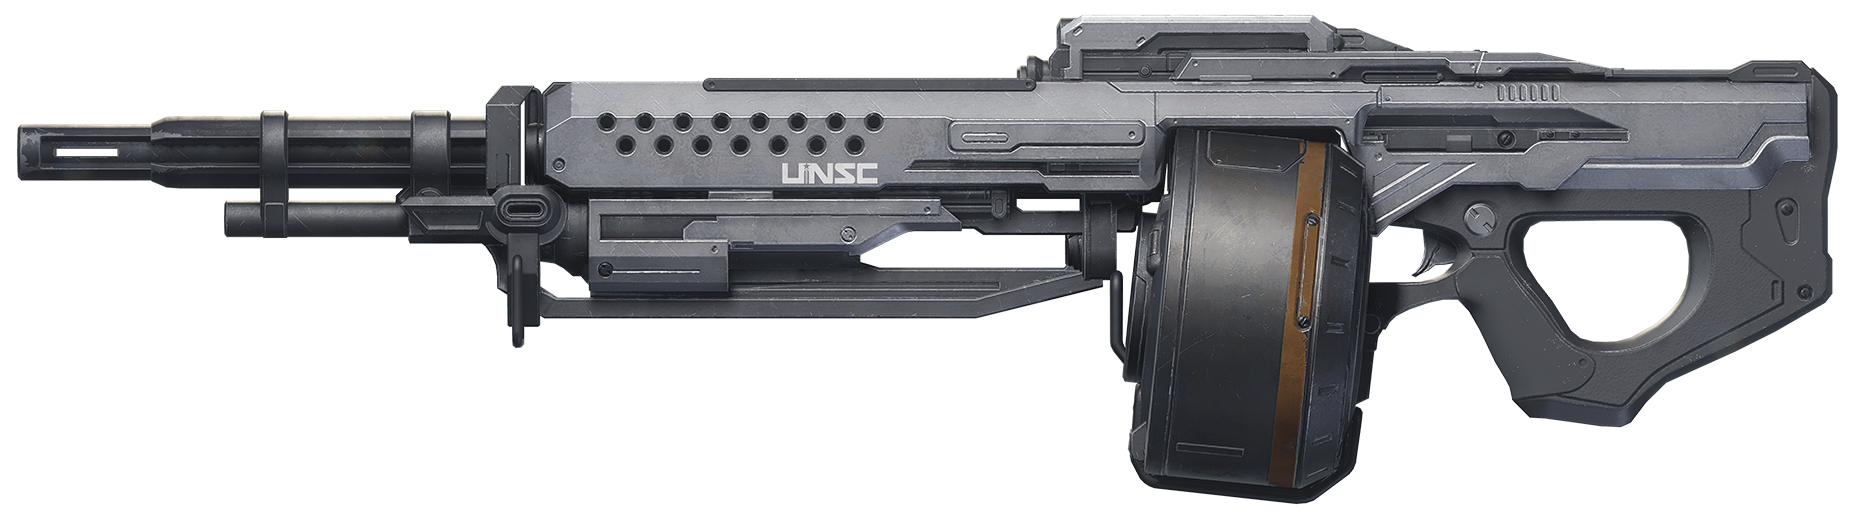 M739 Light Machine Gun Halo Alpha Fandom